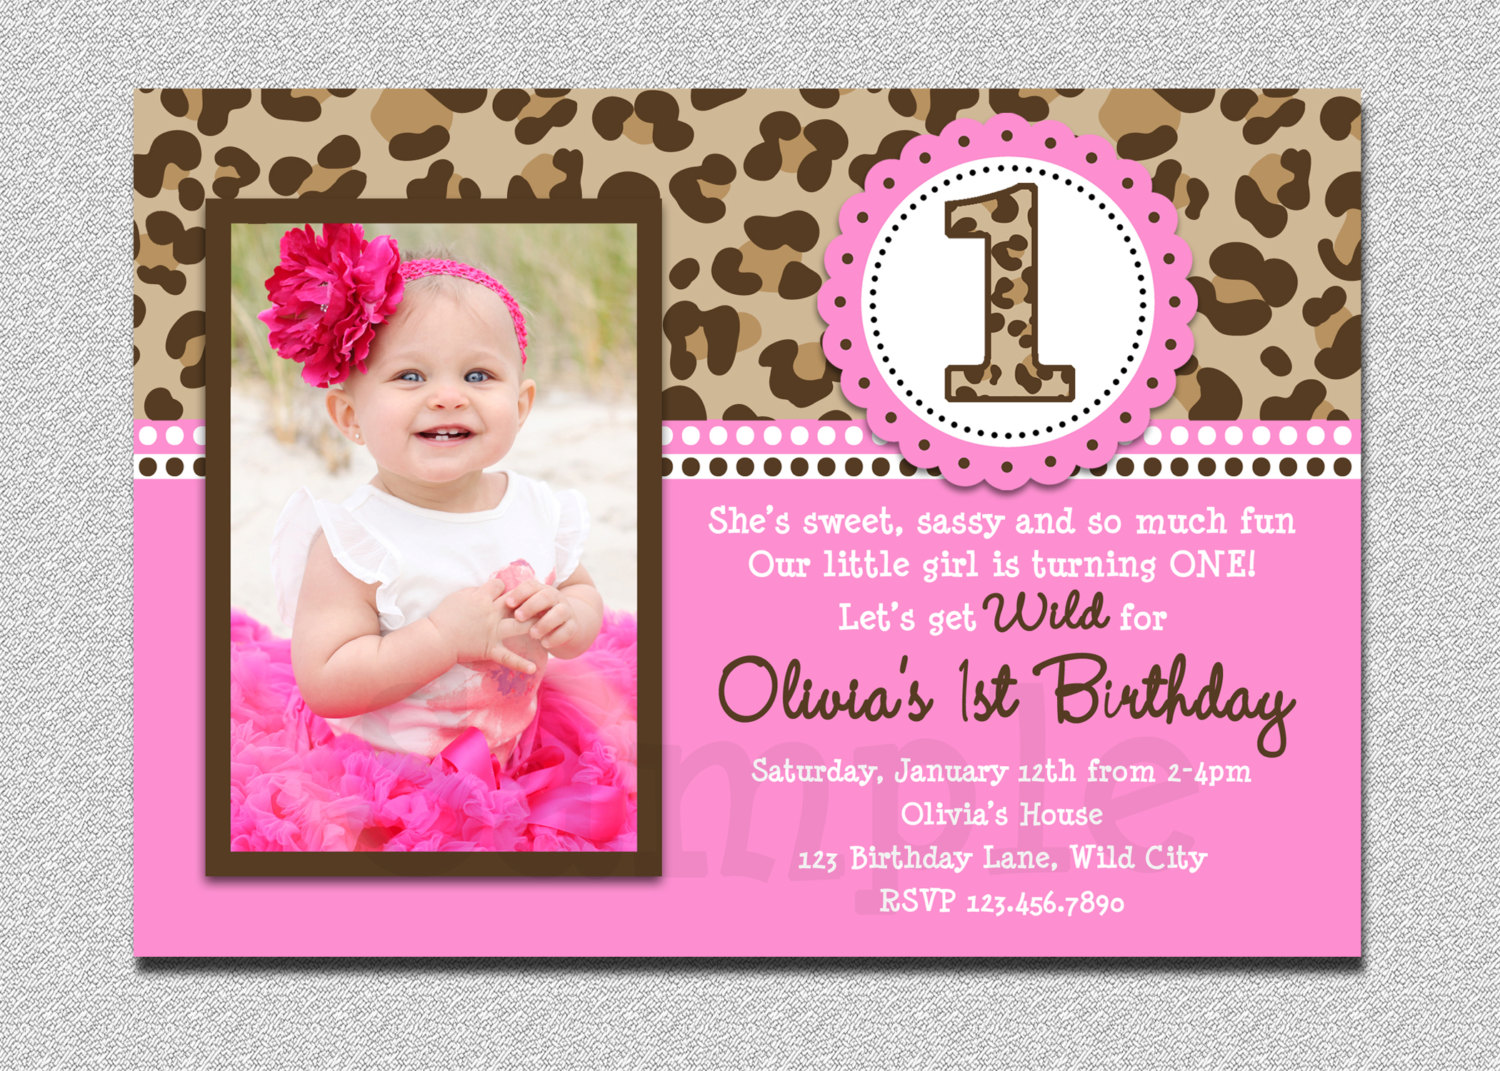 baby's first birthday card ideas ; Exciting-Baby-Girl-First-Birthday-Invitations-Which-You-Need-To-Make-Birthday-Invitation-Wording